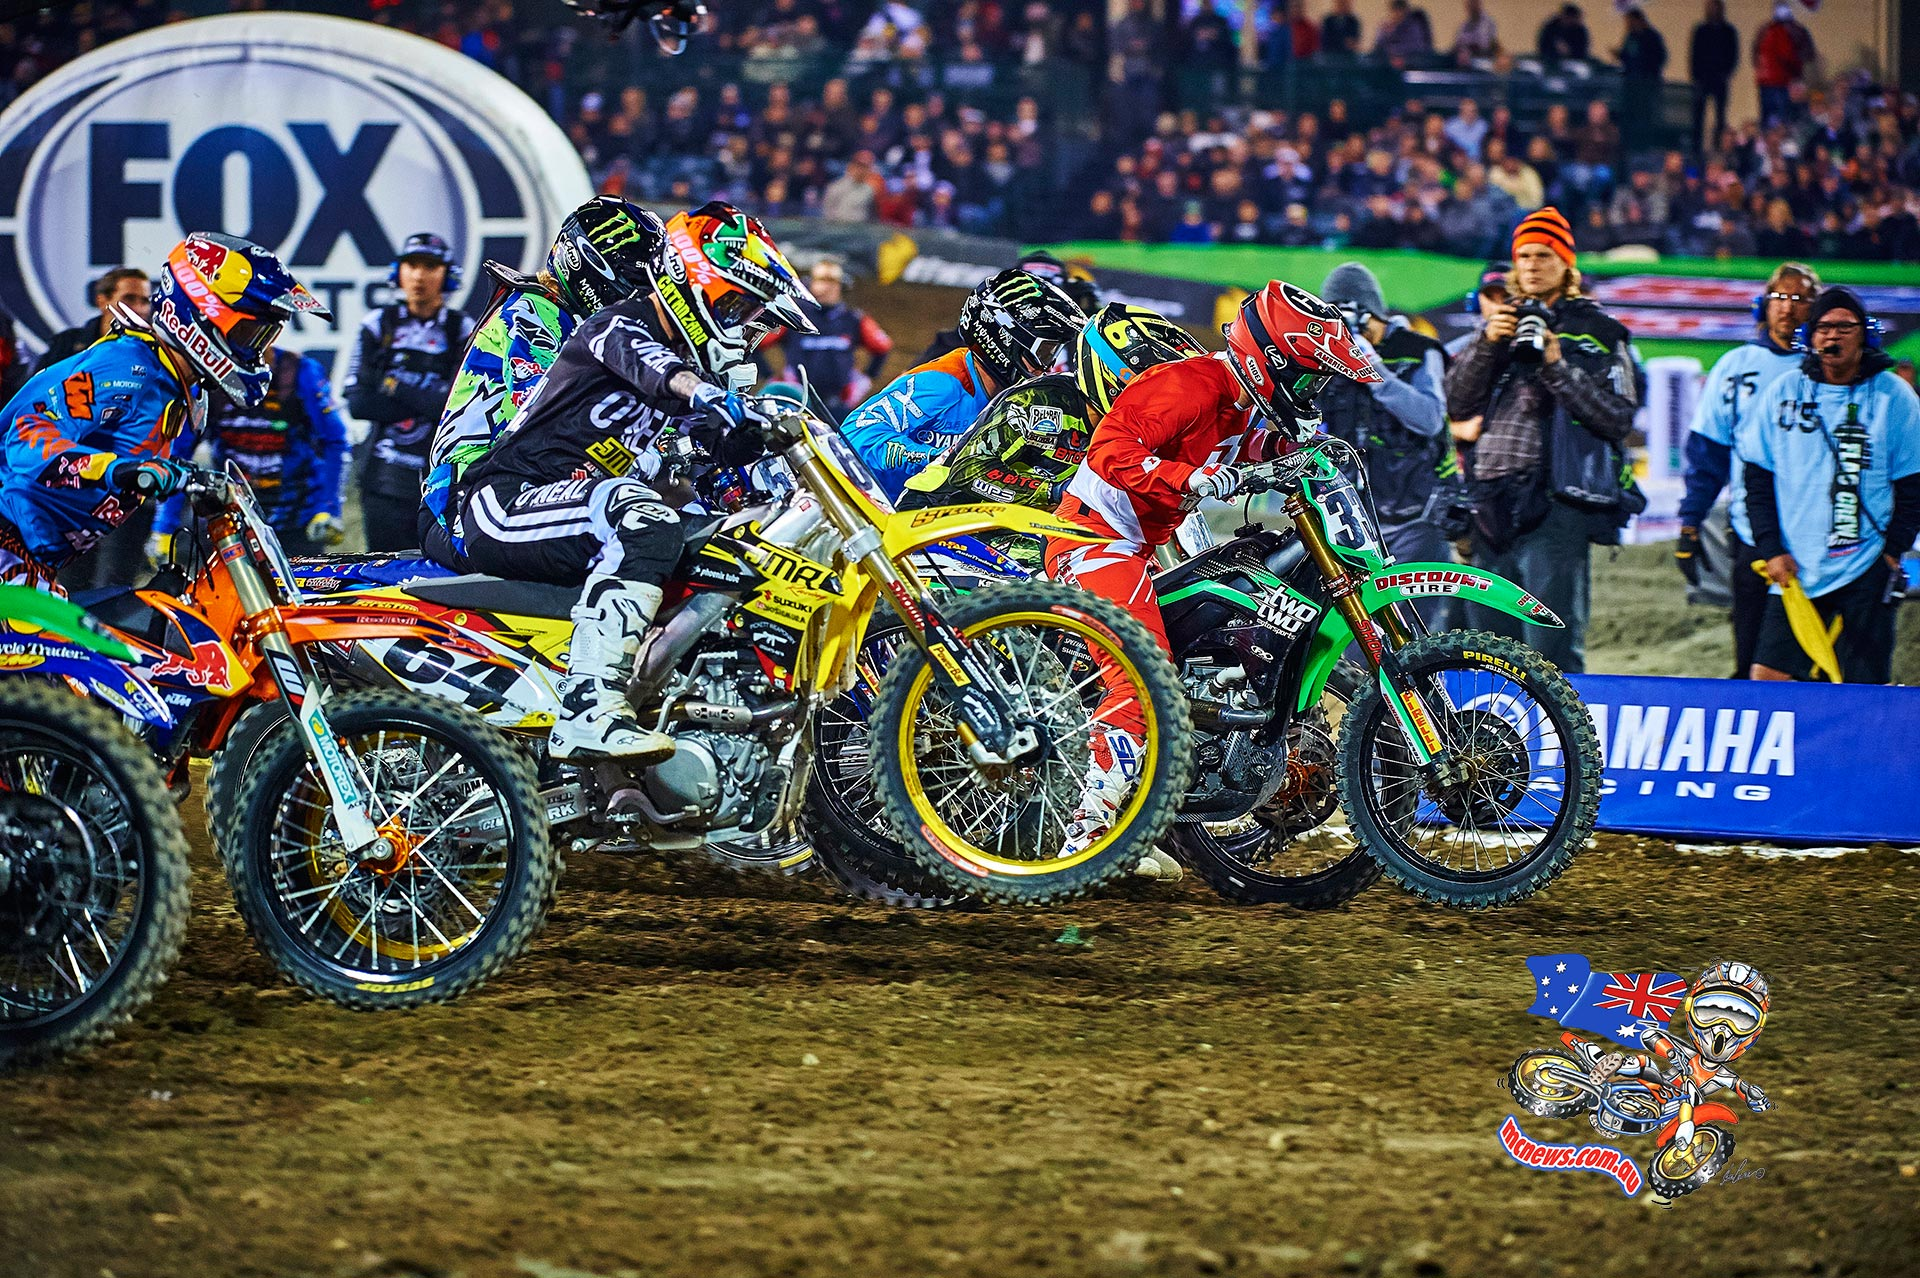 Riders punch off the line at Anaheim 1 2015